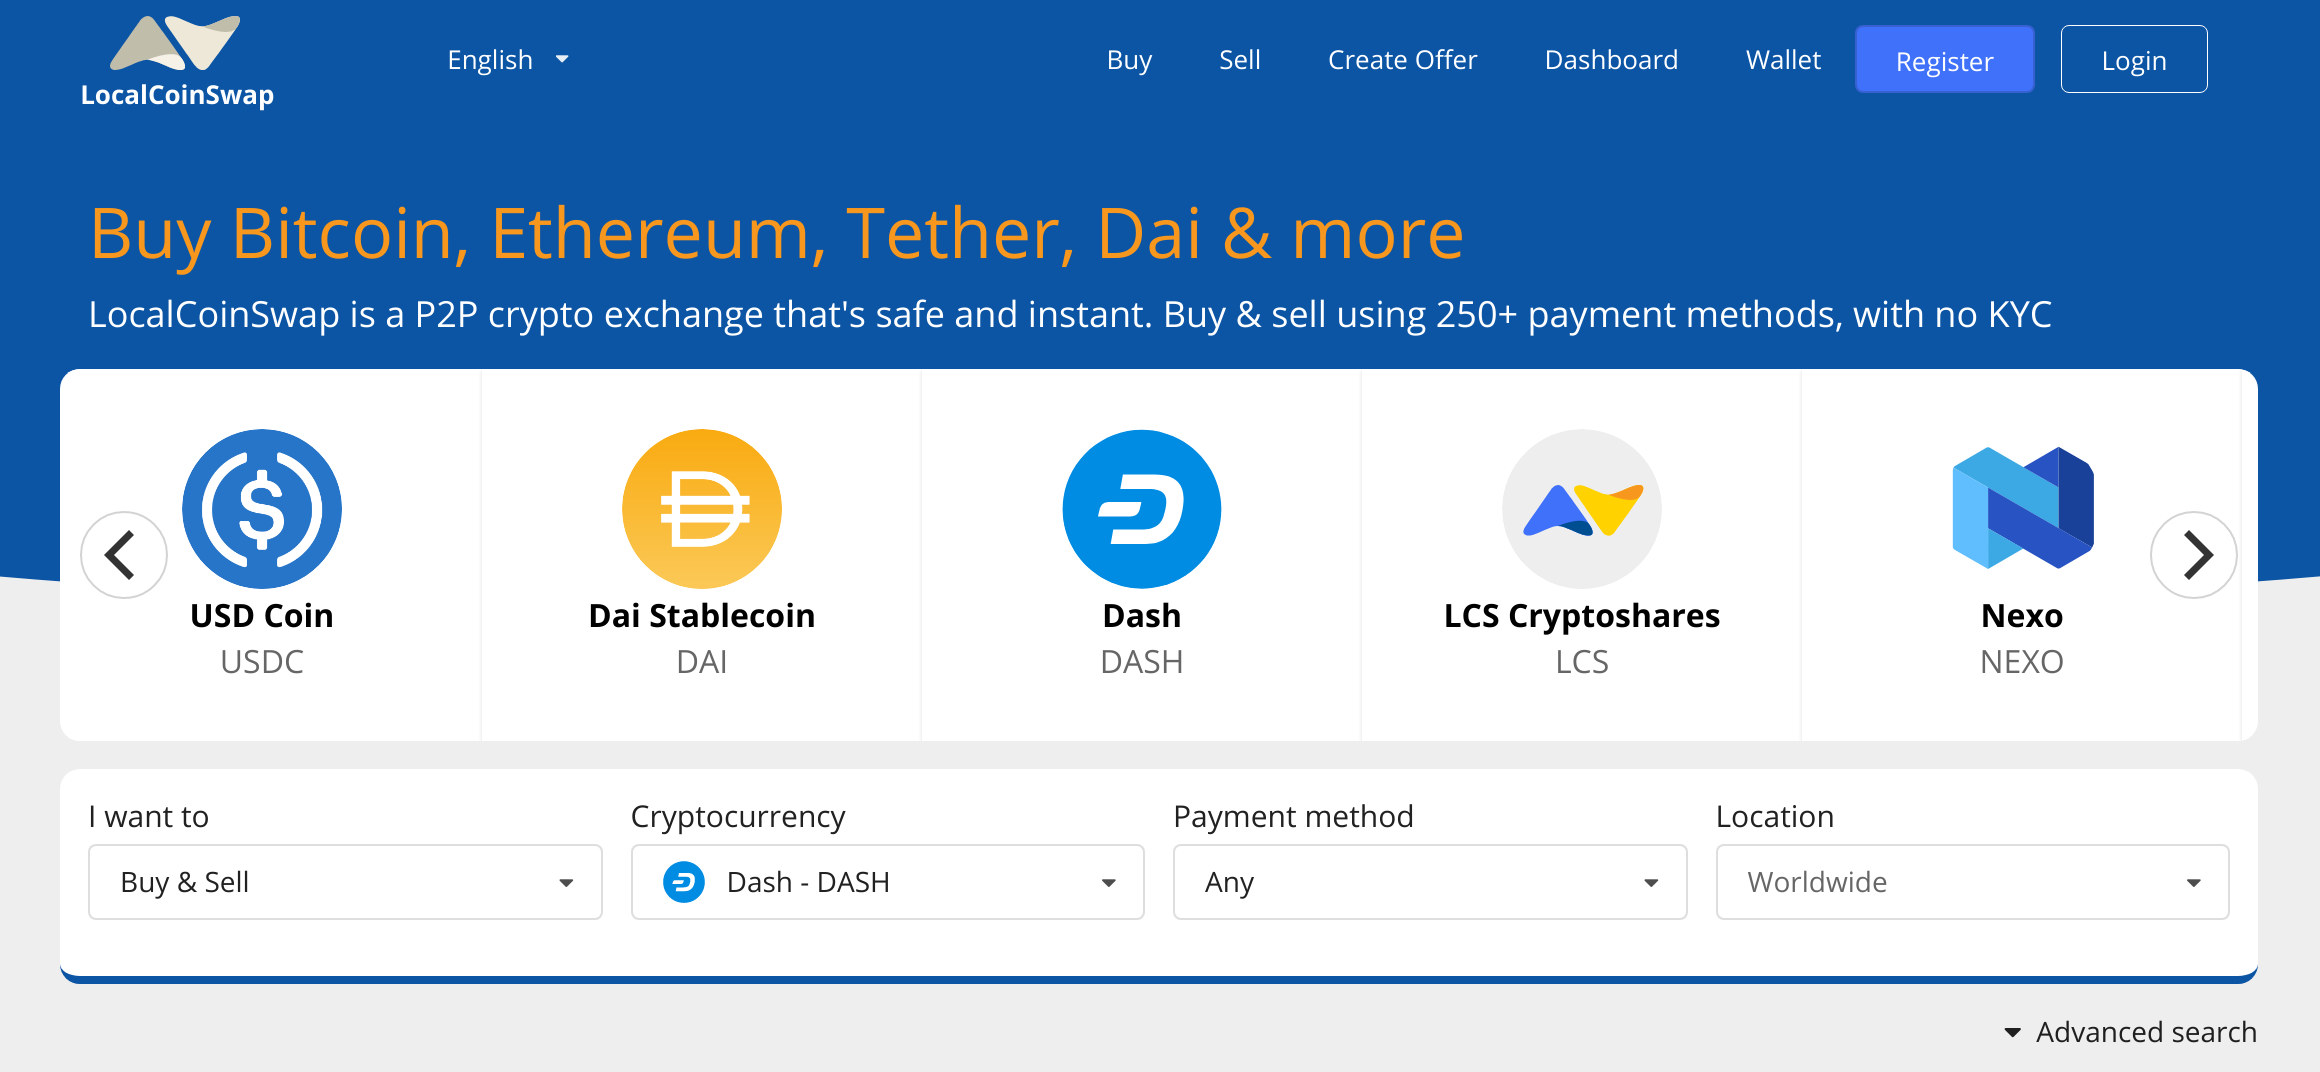 trading Dash cryptocurrency worldwide for cash and other payment methods